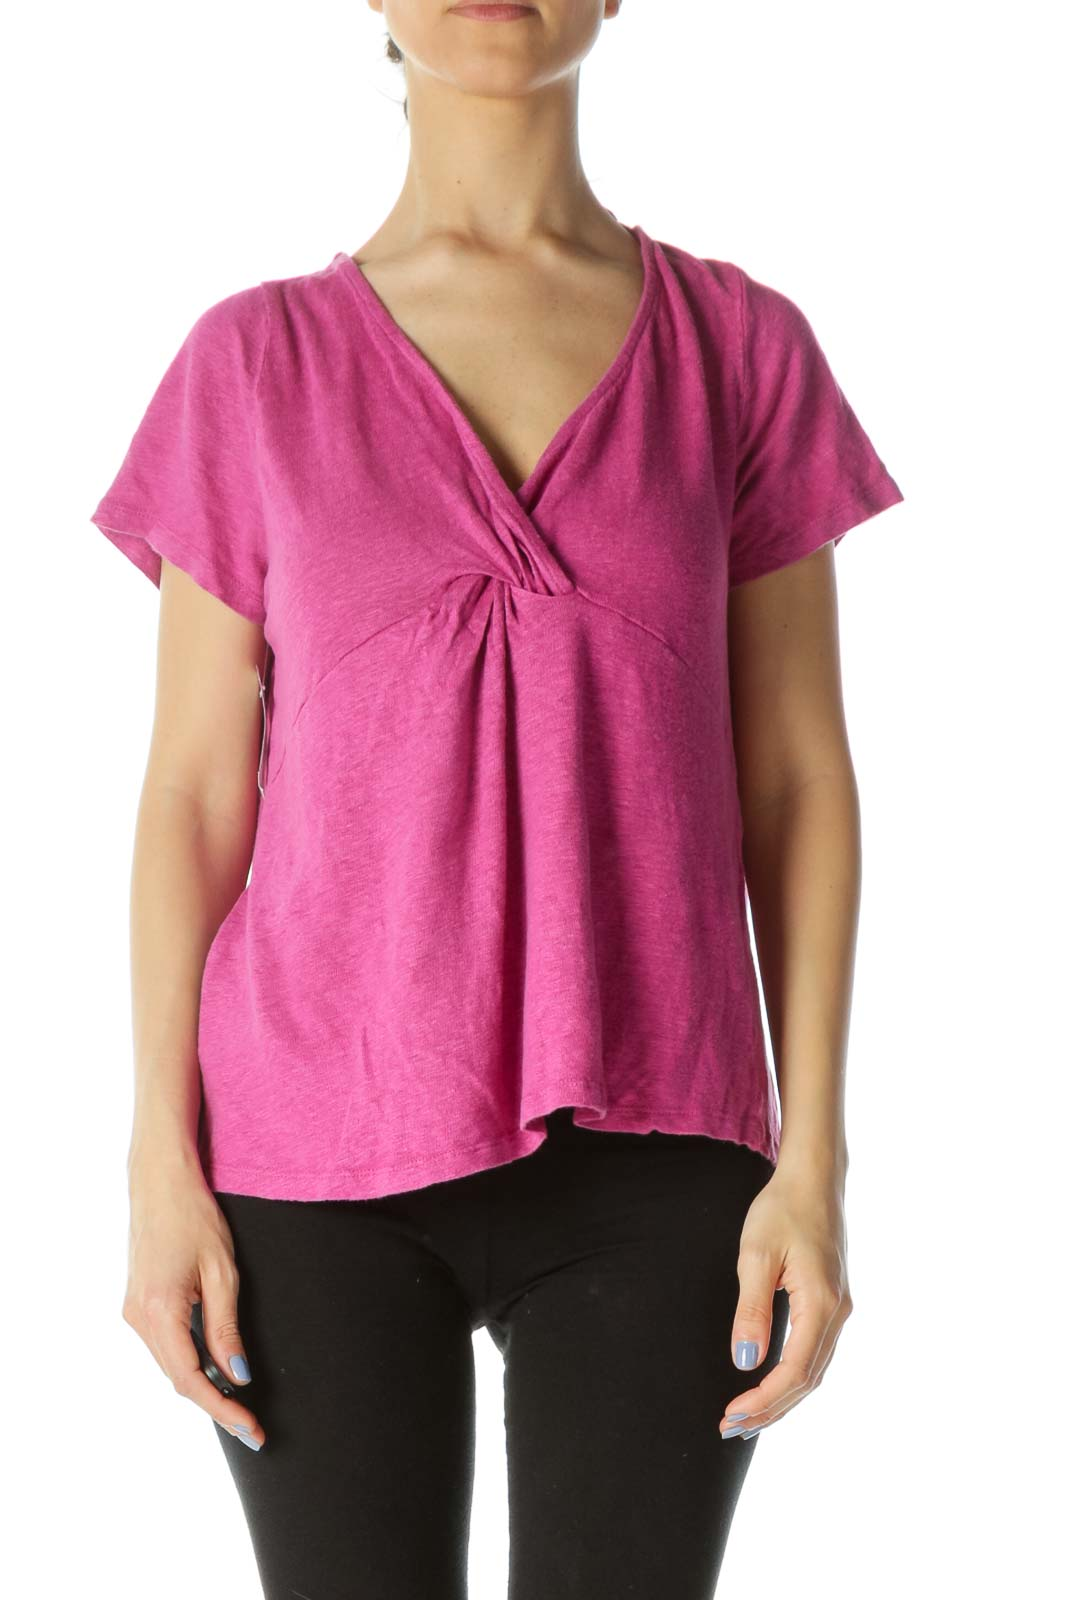 Magenta Pink 100% Linen Short-Sleeve Knot Detail Knit Top